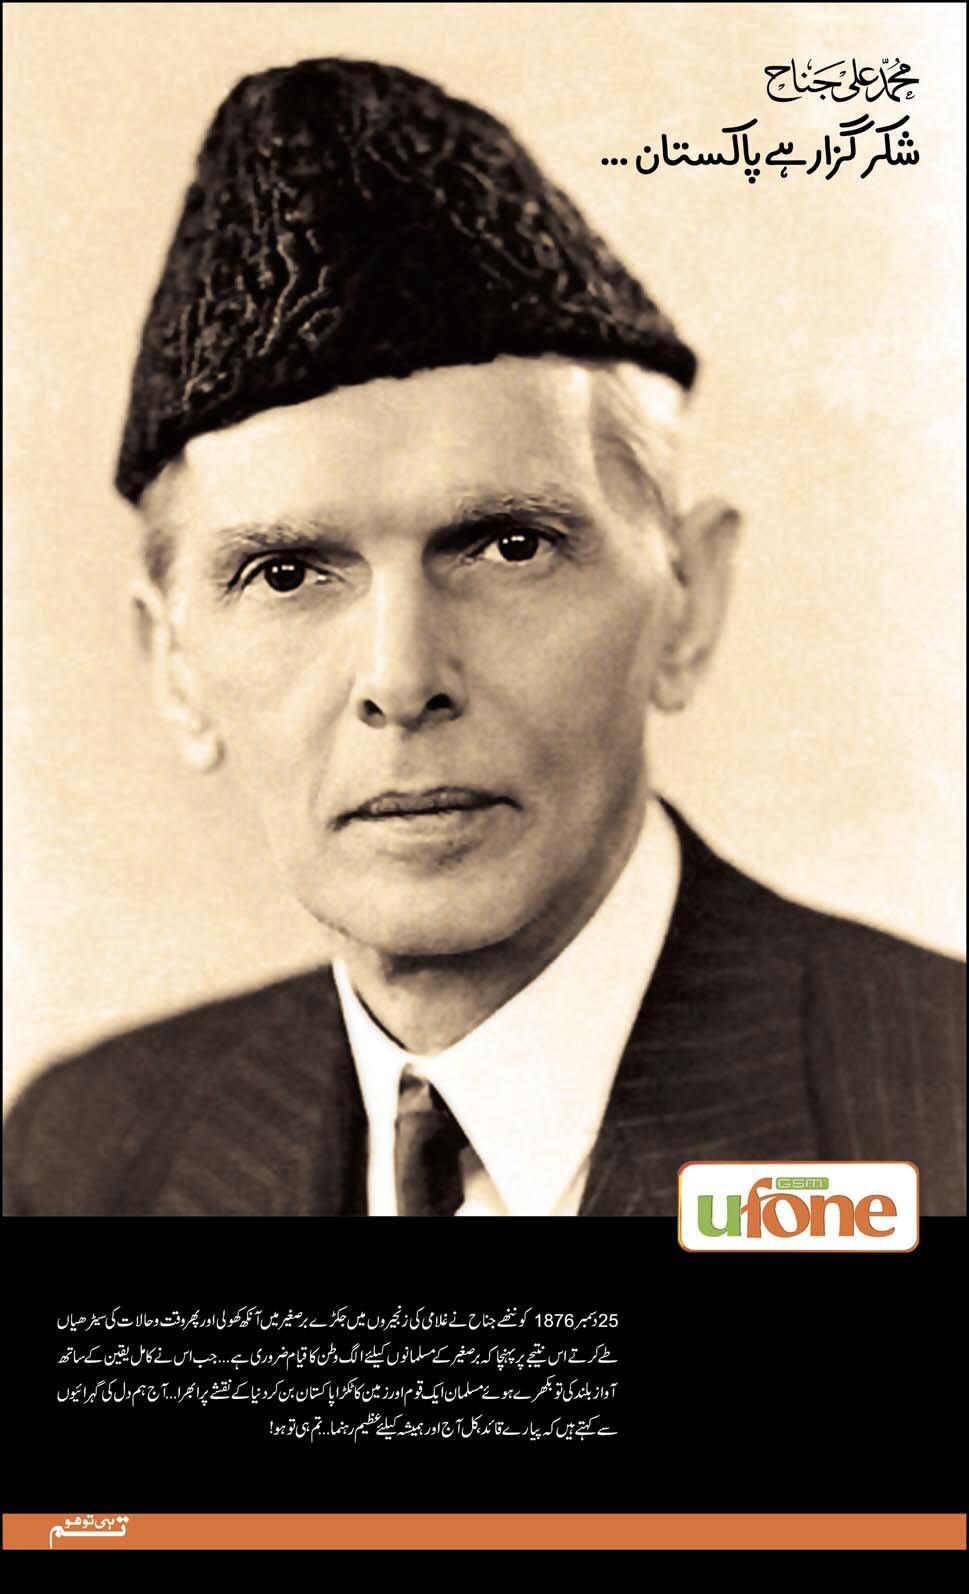 quaid e azam mohammad ali jinnah essay He is known there as 'quaid-i azam' or 'great leader' mohammed ali jinnah  was born on 25 december 1876 in karachi, now in pakistan, but then part of.